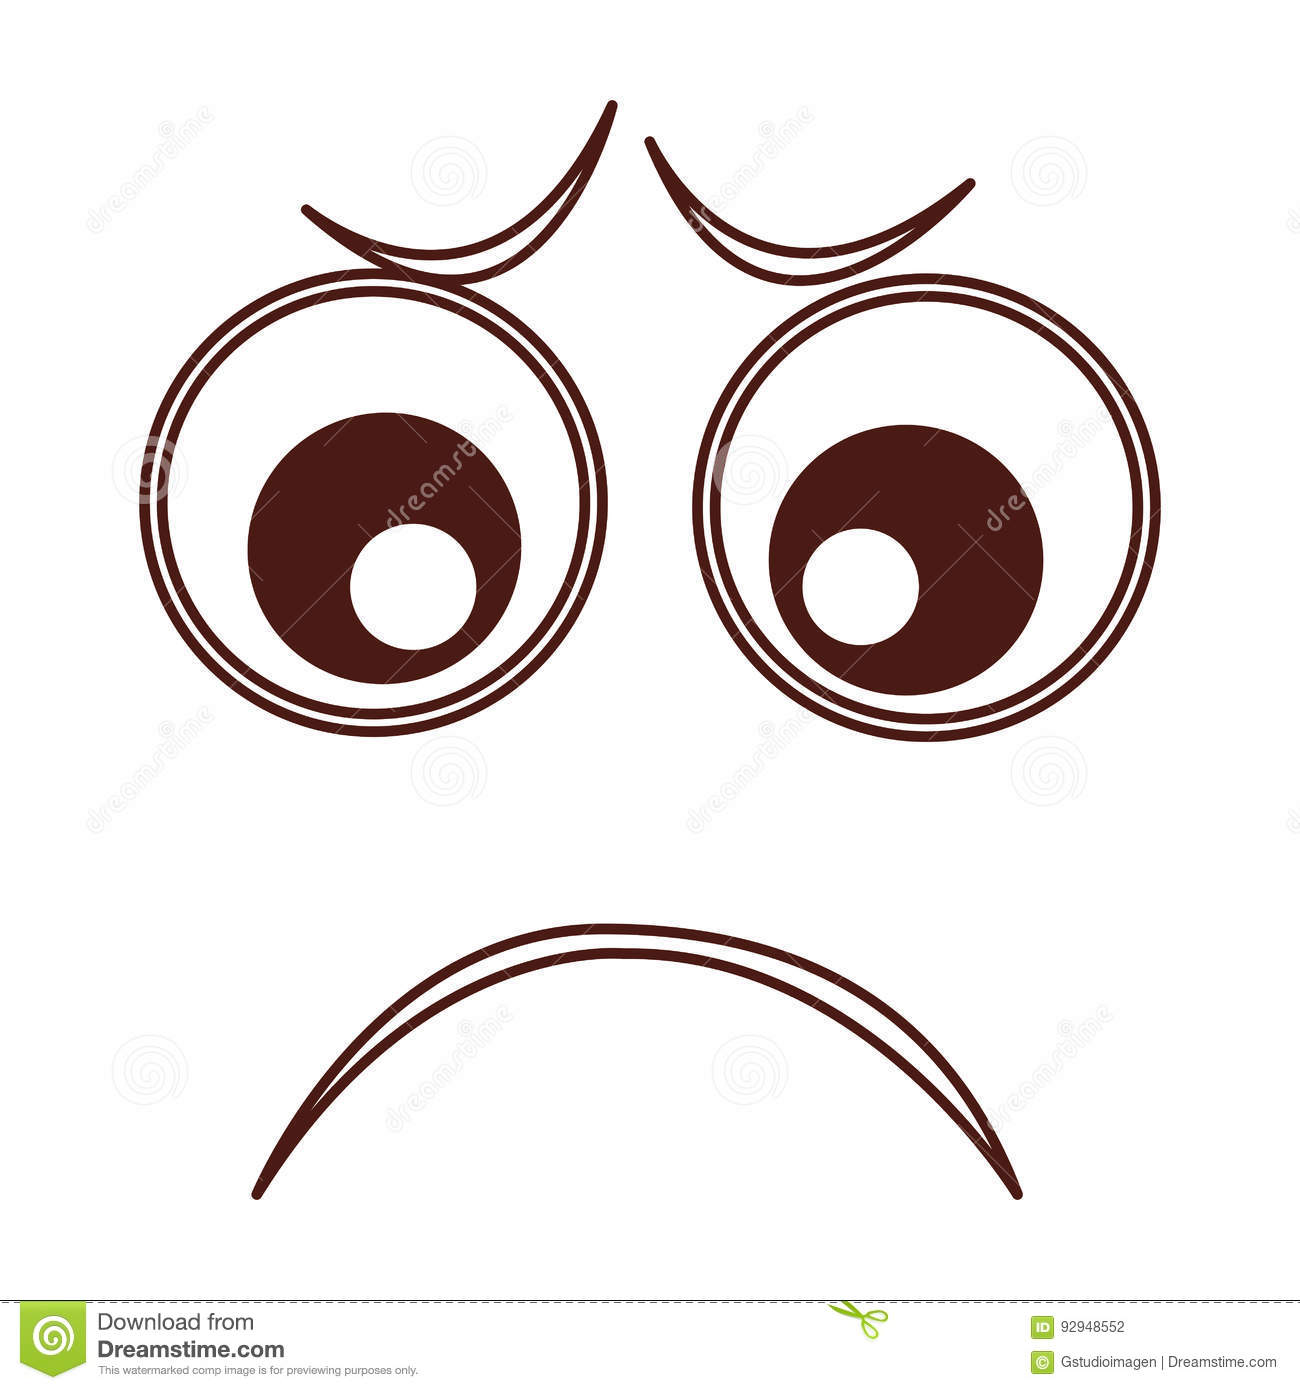 Download Sad Emogy Face Kawaii Character Stock Vector